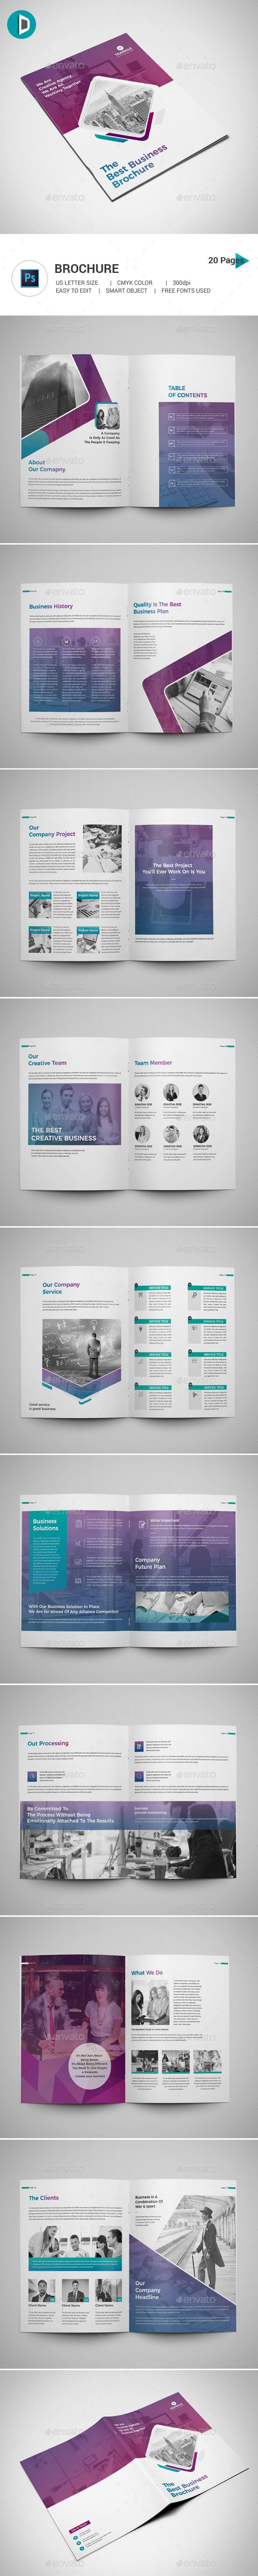 Brochure This Brochure Template Contains 20 Pages. You can use this brochure for your business purpose or others sector. You can easily change all text, layers, images etc (Smart Object use for image import).  Features:      20 Pages      US Letter Size      CMYK color mode      Easy to Edit      Photoshop PSD File